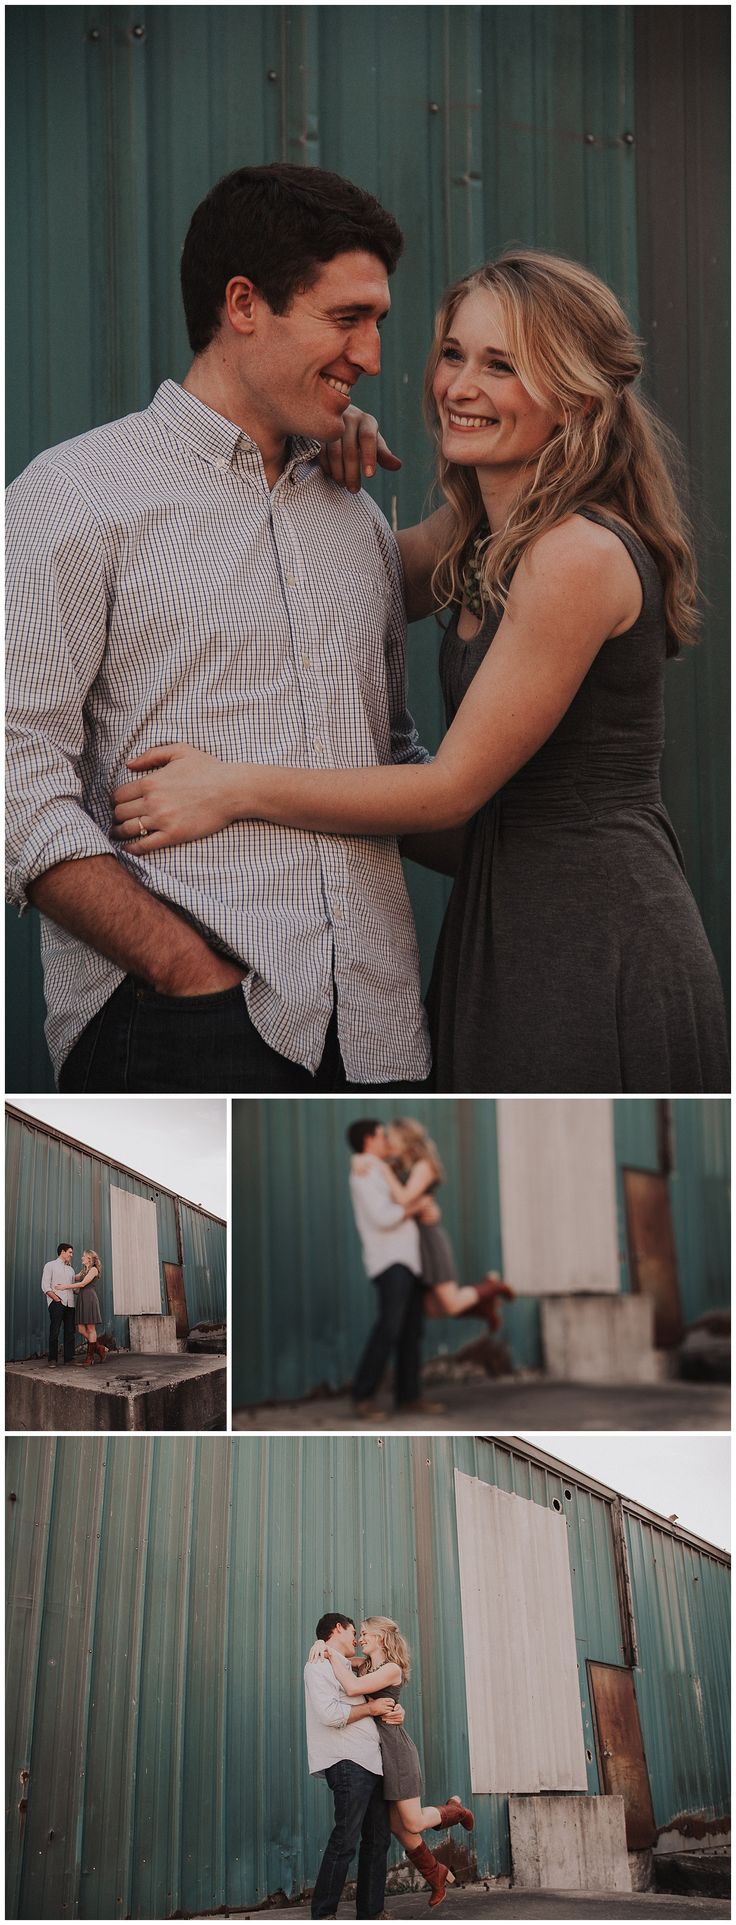 Intimate Engagement in Soulard downtown St. Louis, Missouri. It was the perfect urban setting and just down the street from the church they were getting married at the very next day. Teal warehouses and sunset made this session gorgeous. Dark & moody Images for Wild Souls by Green Bay, Wisconsins husband and wife Elle x Troy Photography.